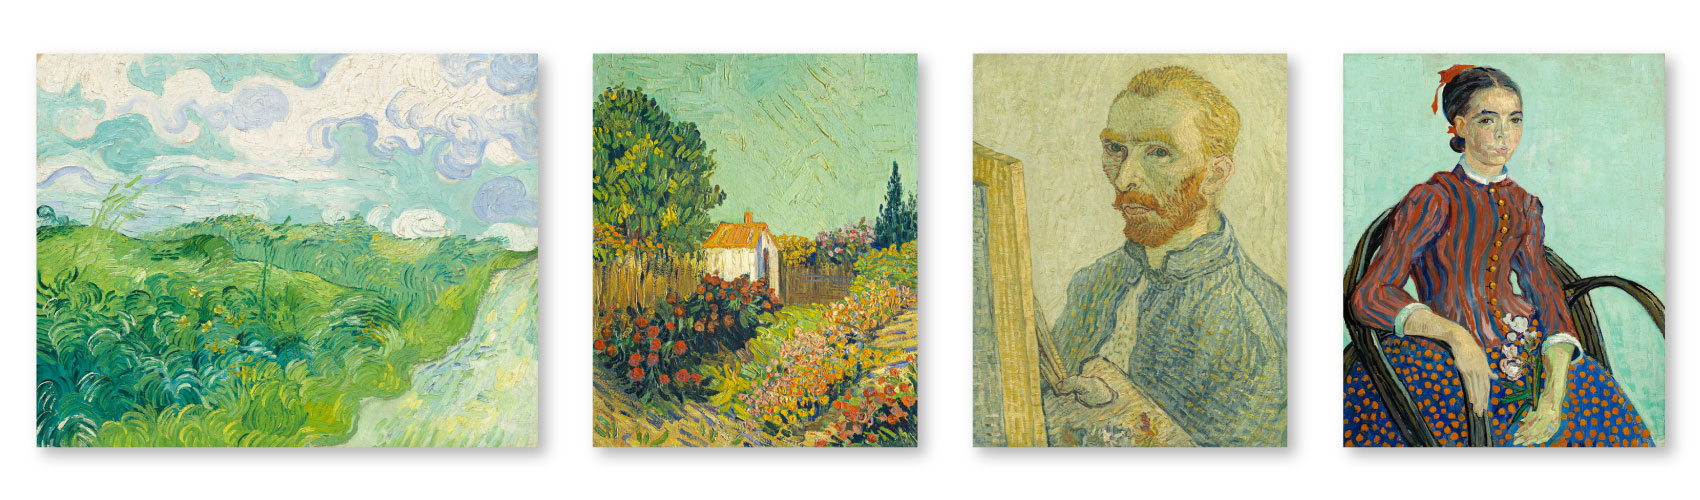 Artworks produced by Vincent Van Gogh